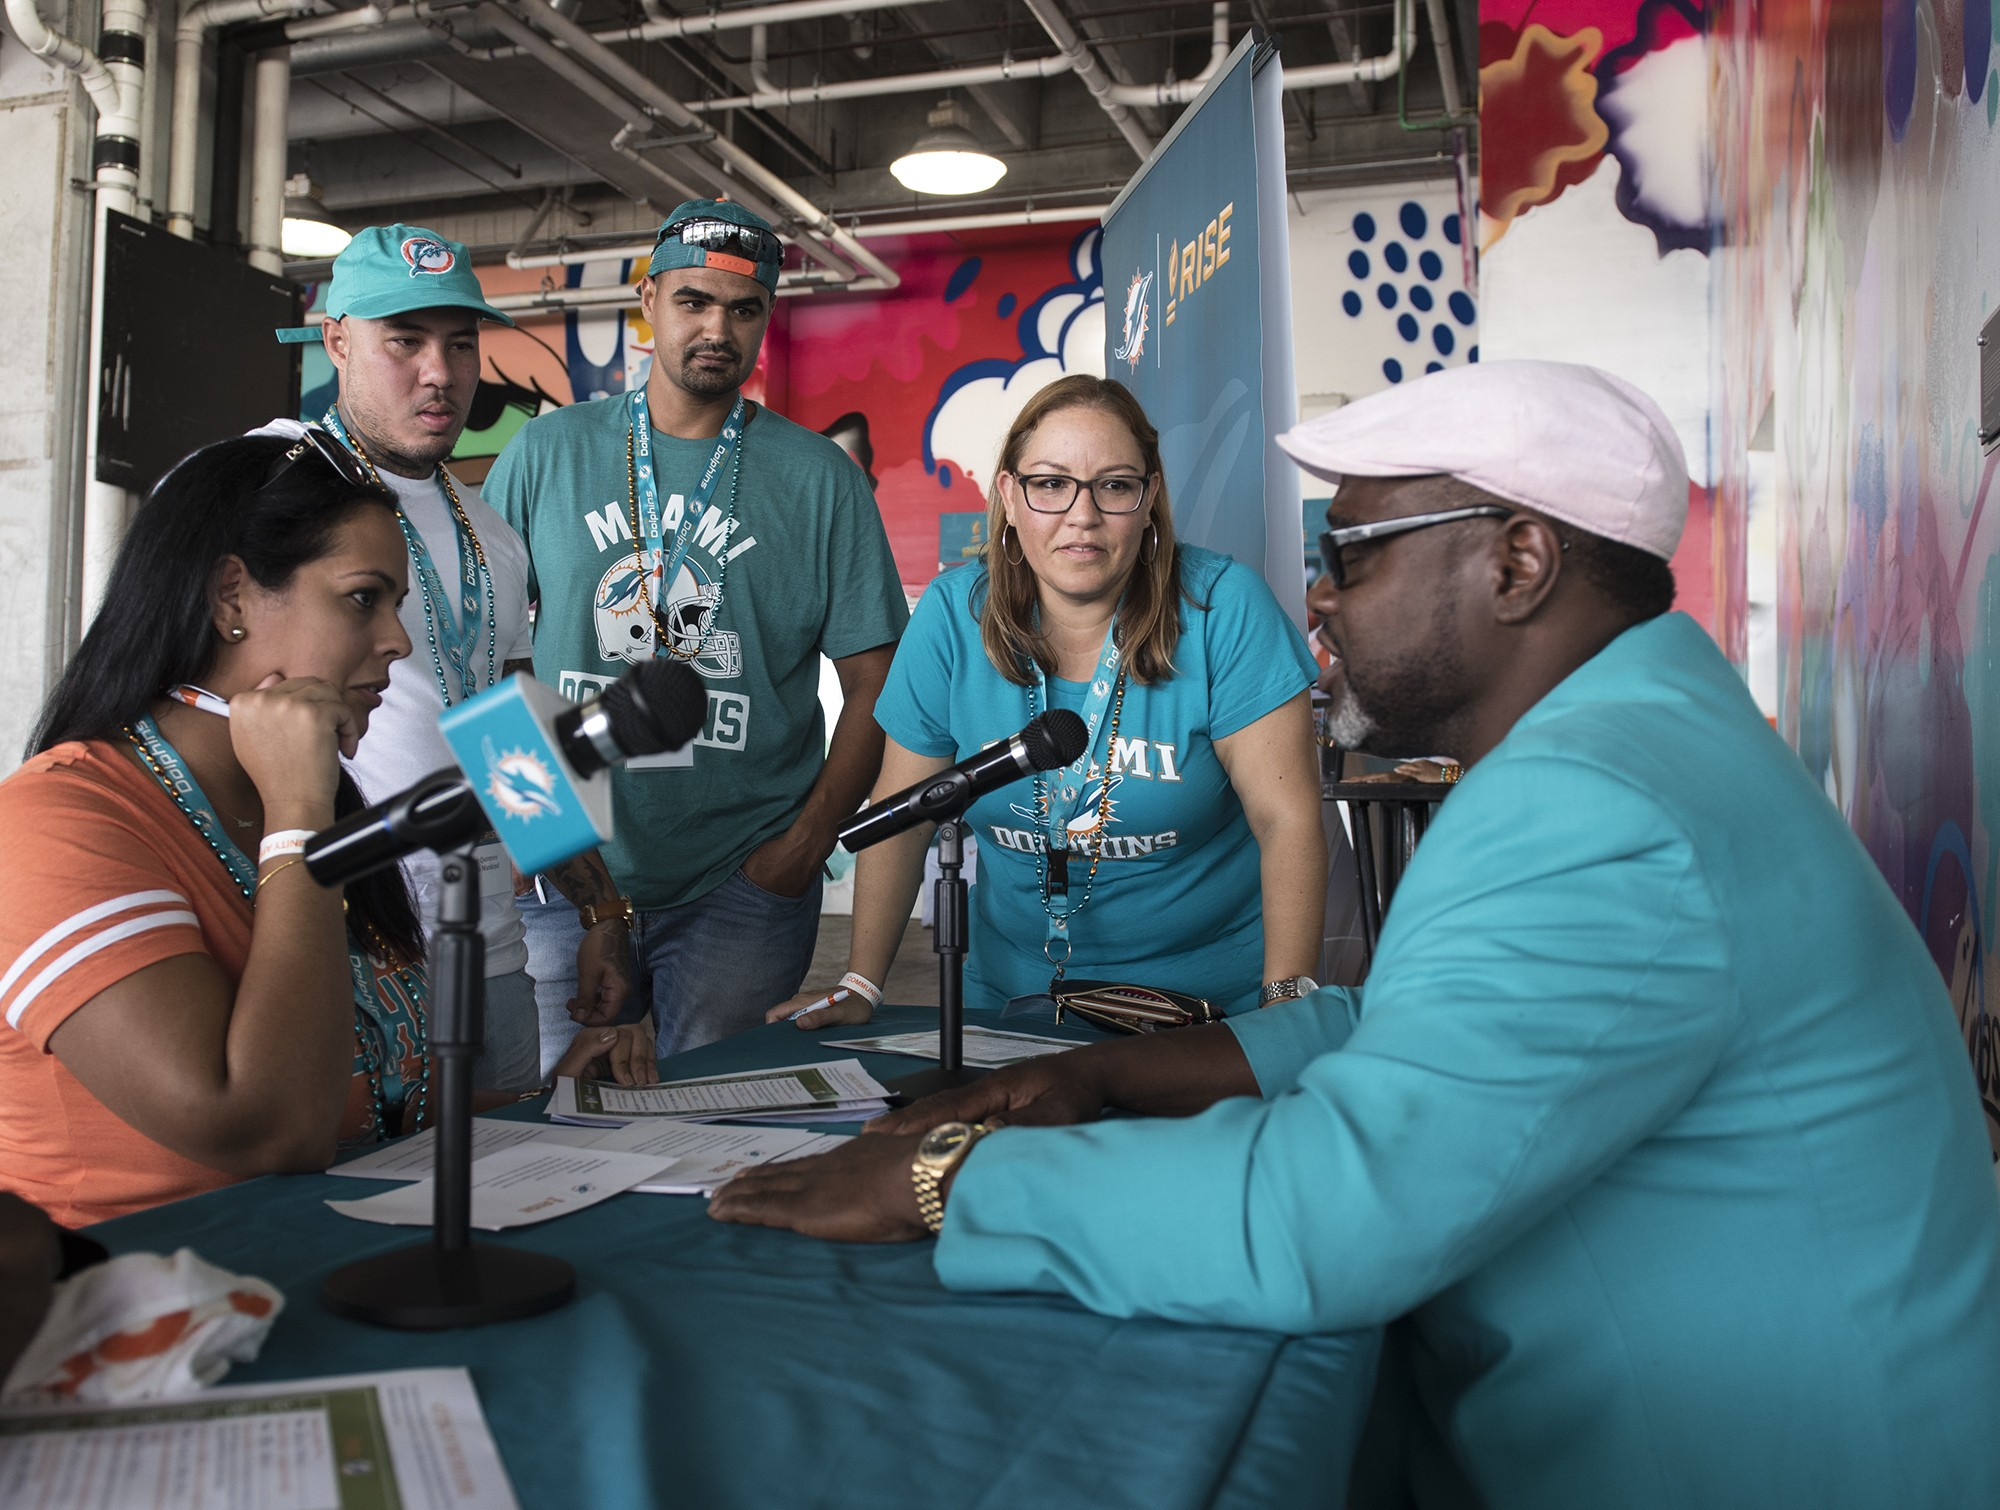 Miami Dolphin Alumni Mark Duper (1982-1992) talks with Laura Martinez, Rene Quintero, Alejandro Martinez, and Alicia Castillo of the Adults Mankind Organization from Miami NFL football game on Sunday, Oct. 22, 2017, in Miami Gardens, Fla. (Donald Edgar/El Latino Digital)